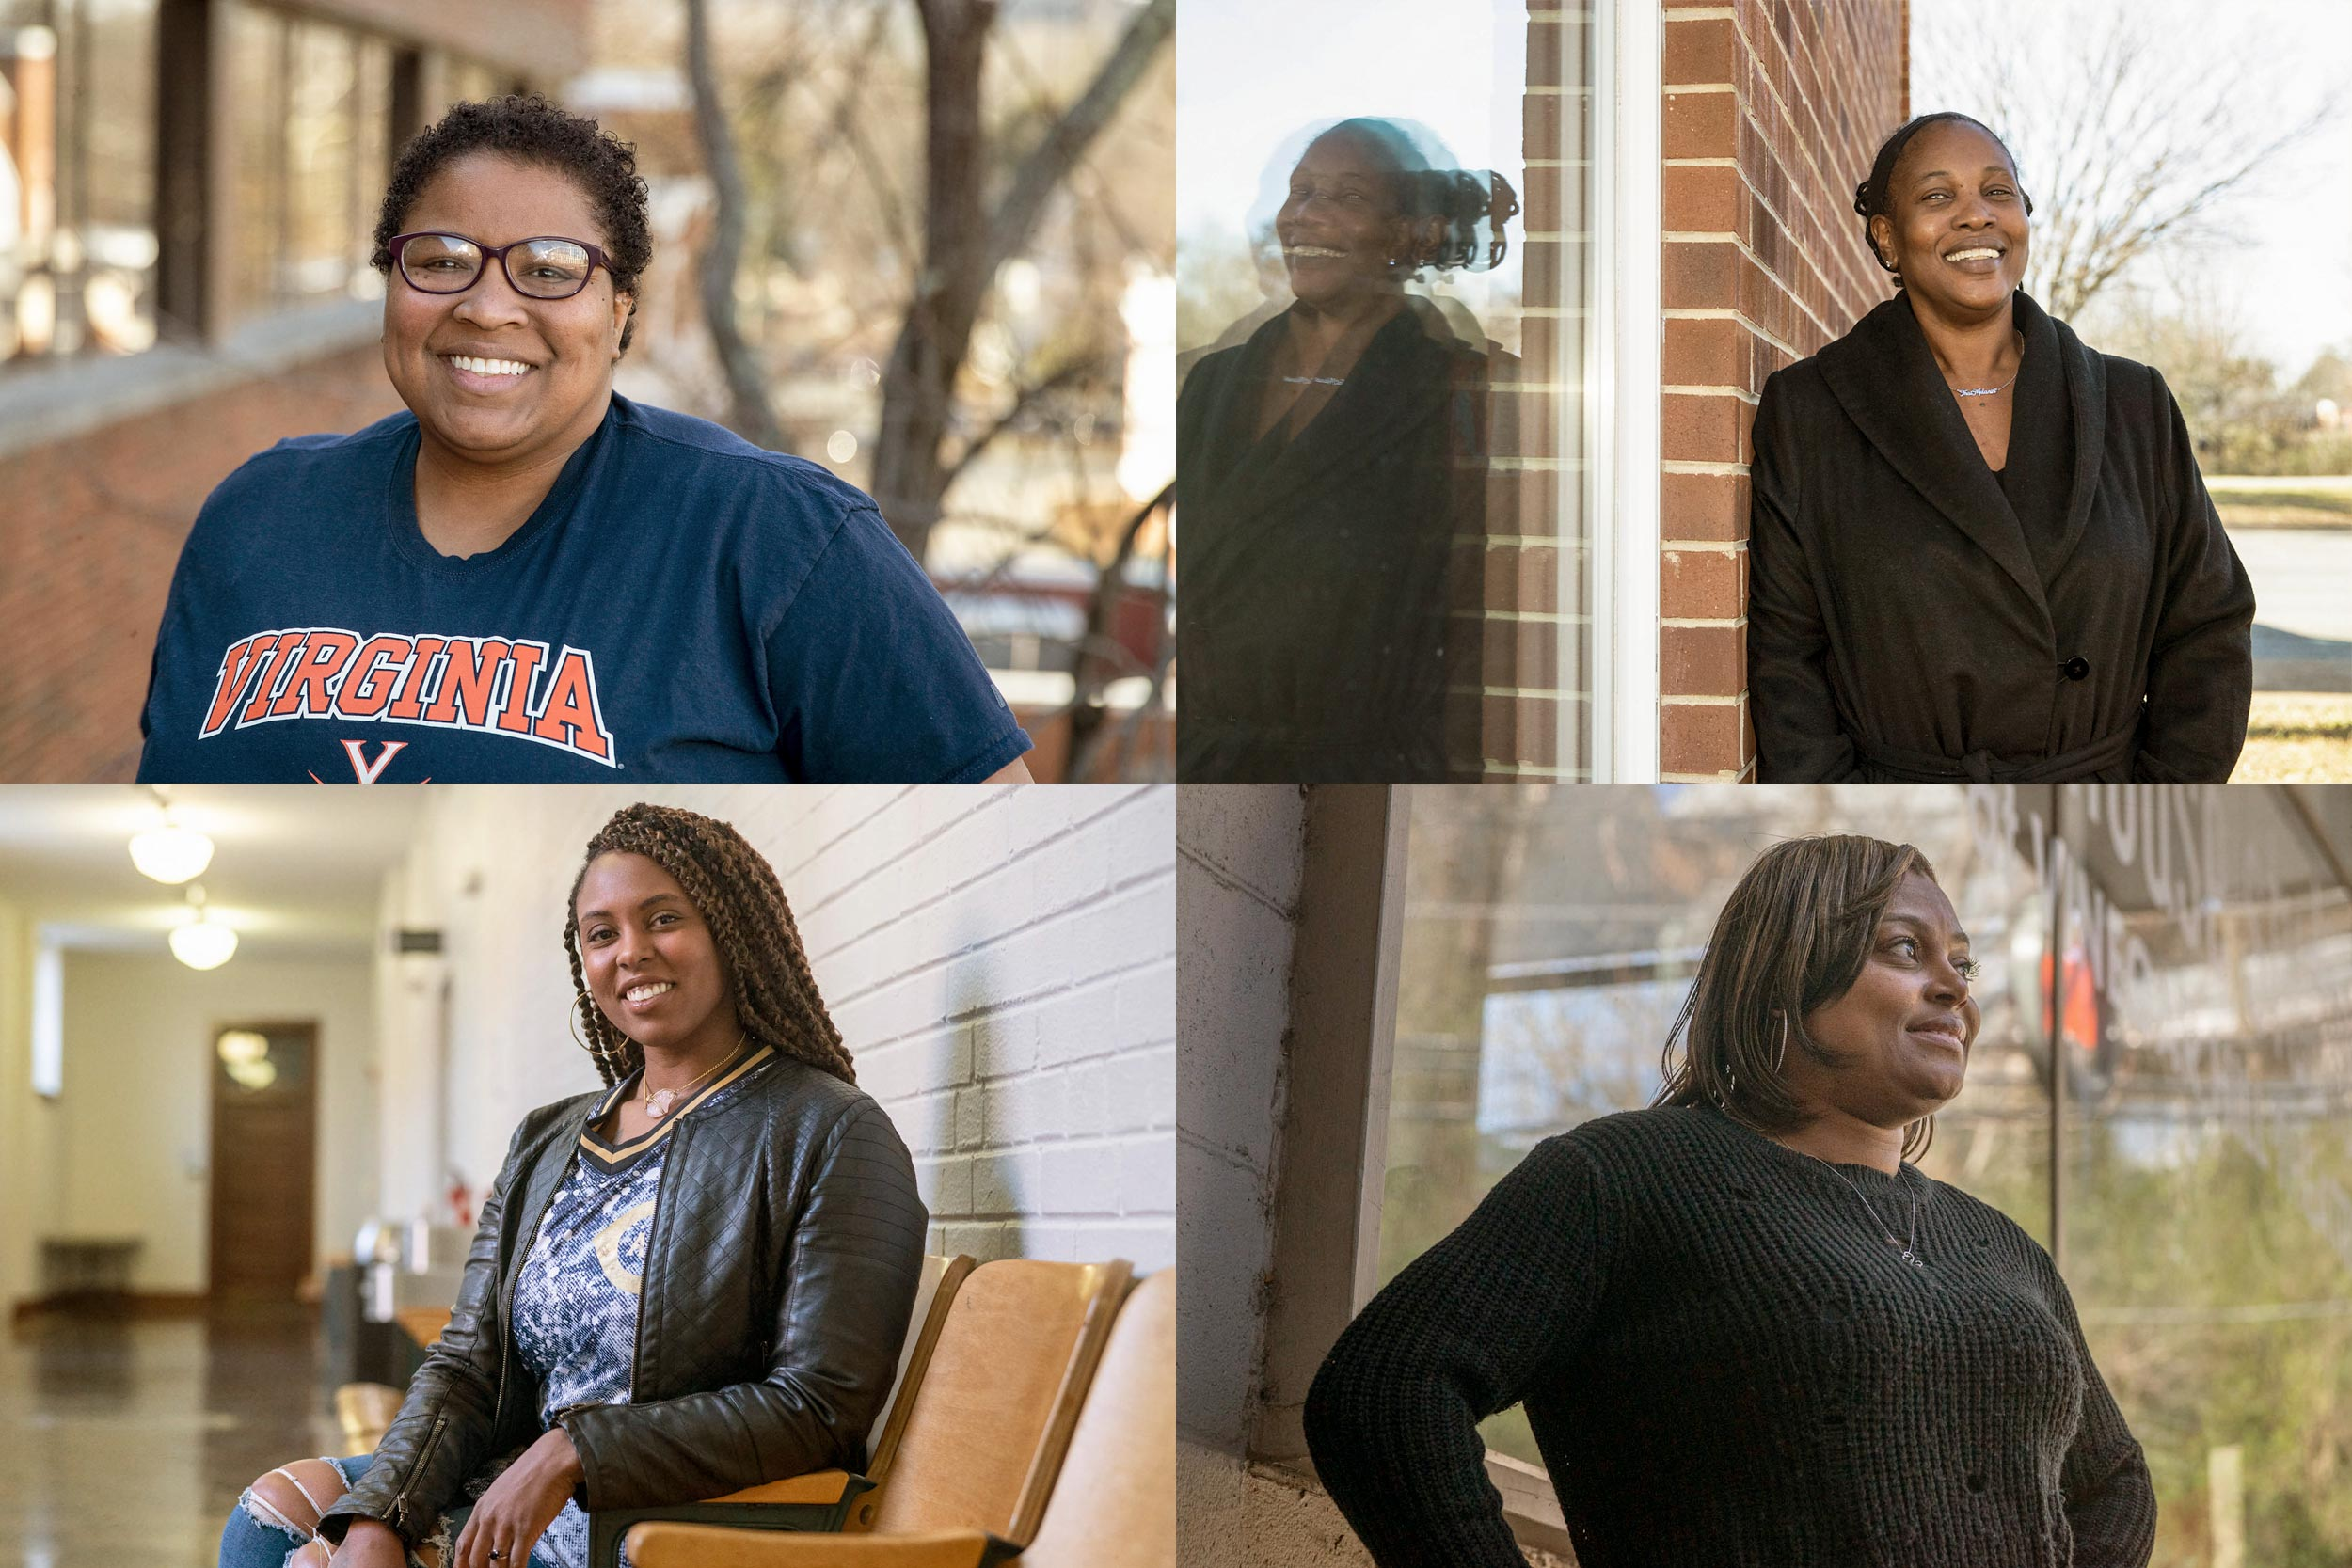 Clockwise from top left: 2020 Equity Center Community Fellows Myra Anderson, Libby Edwards-Allbaugh, Tanesha Hudson and Destinee Wright. (Photos by Sanjay Suchak and Dan Addison, University Communications)